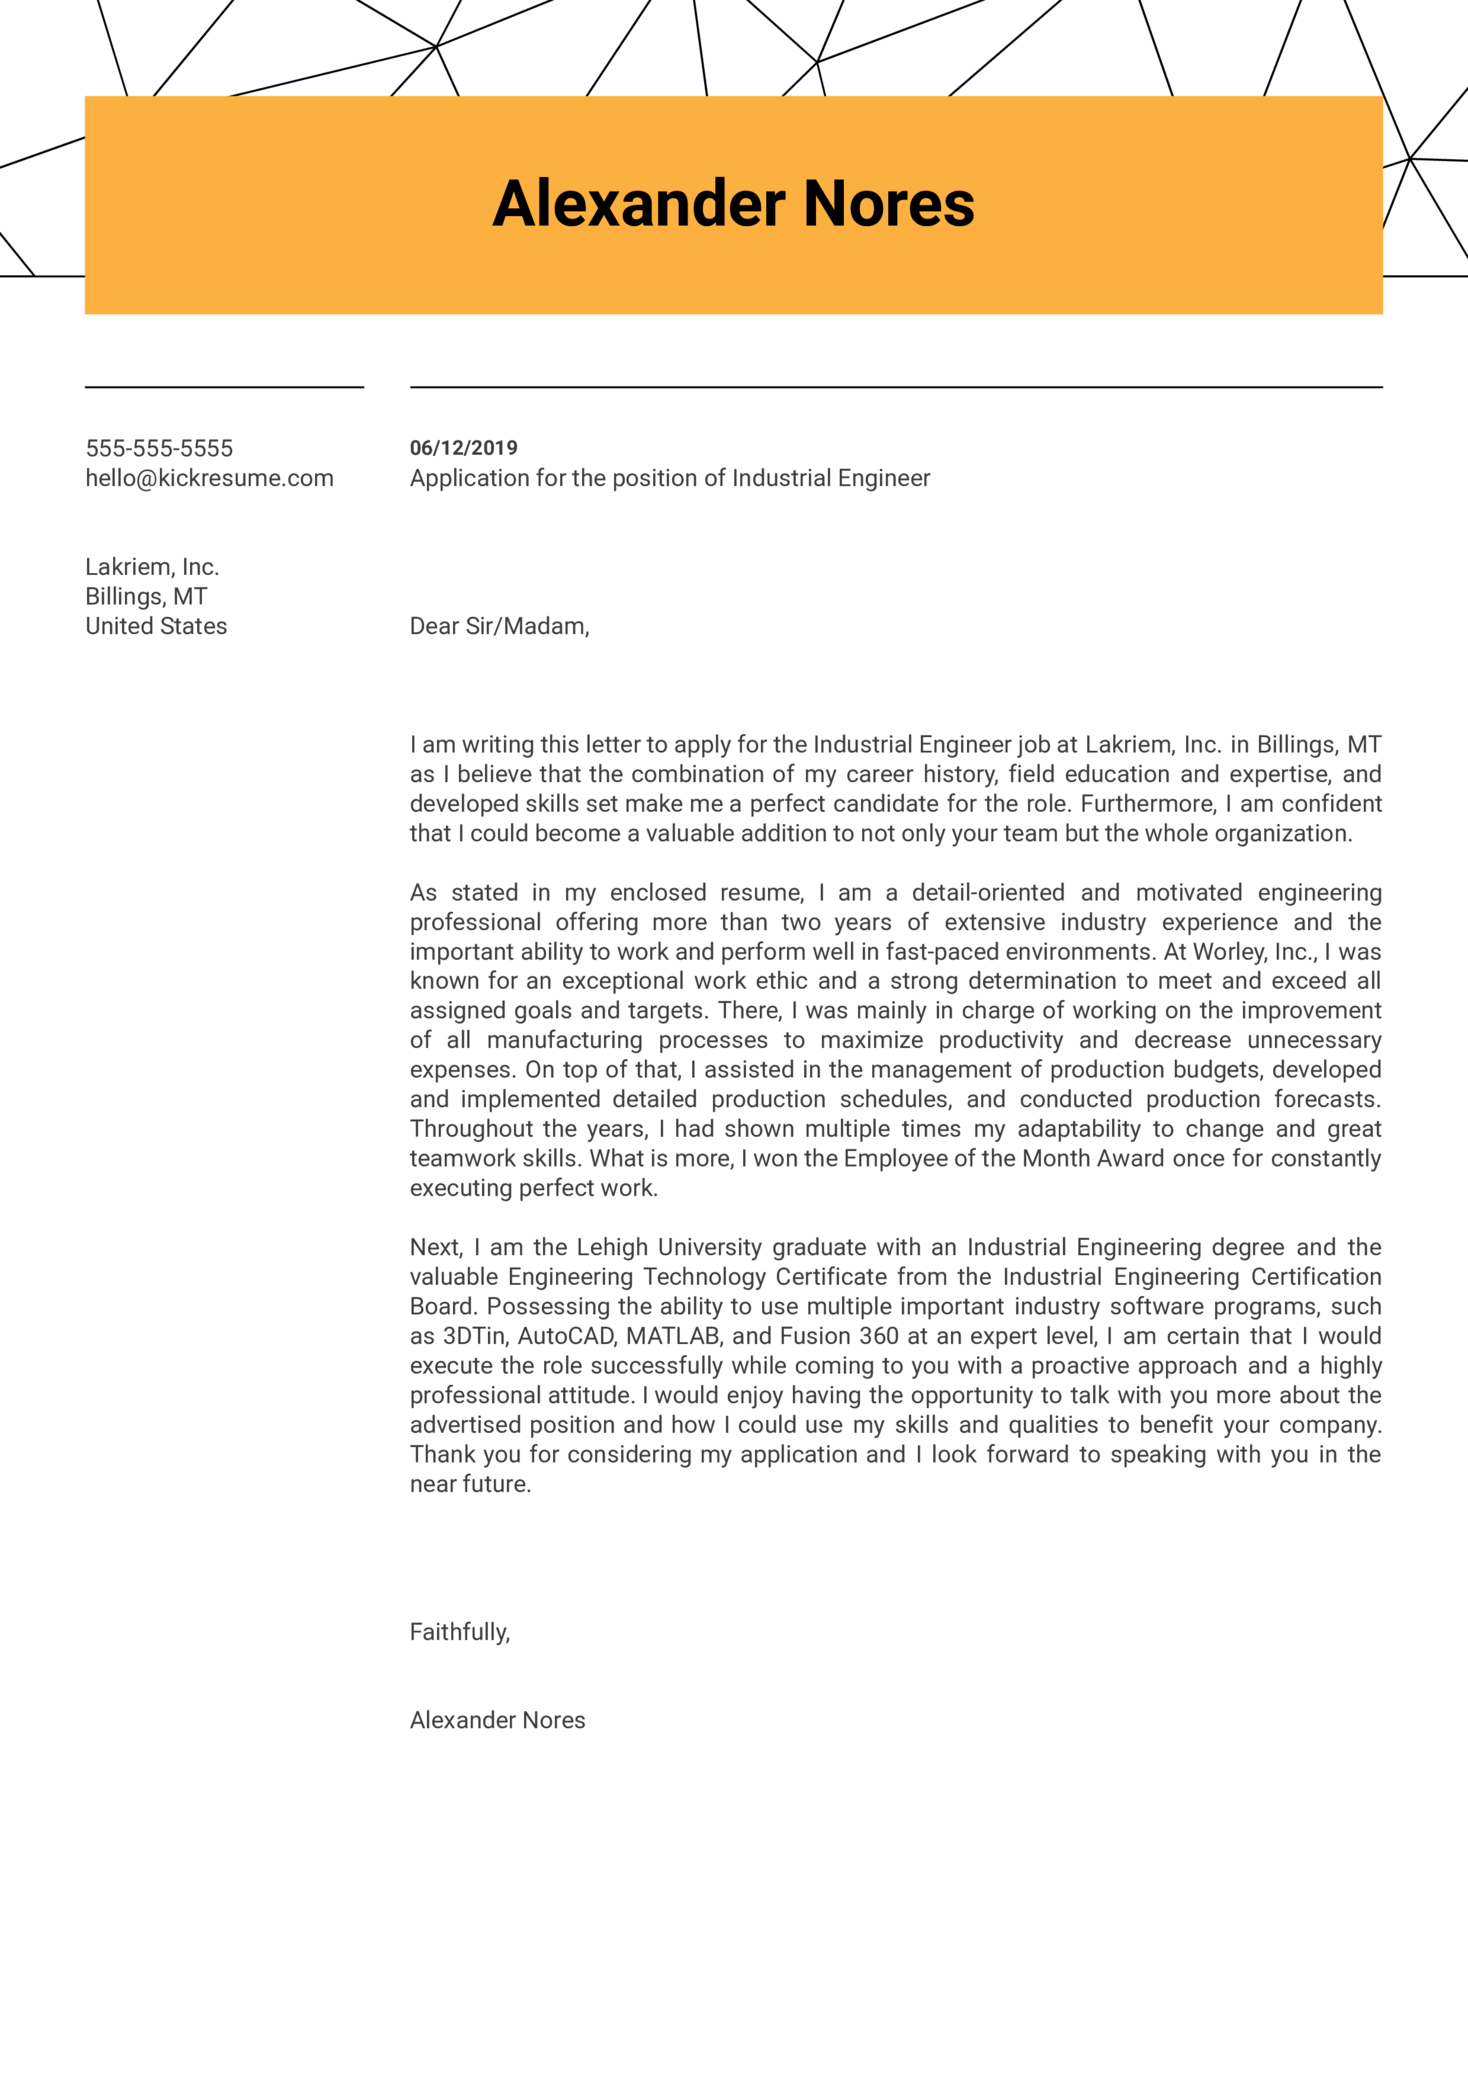 Industrial Engineer Cover Letter Sample